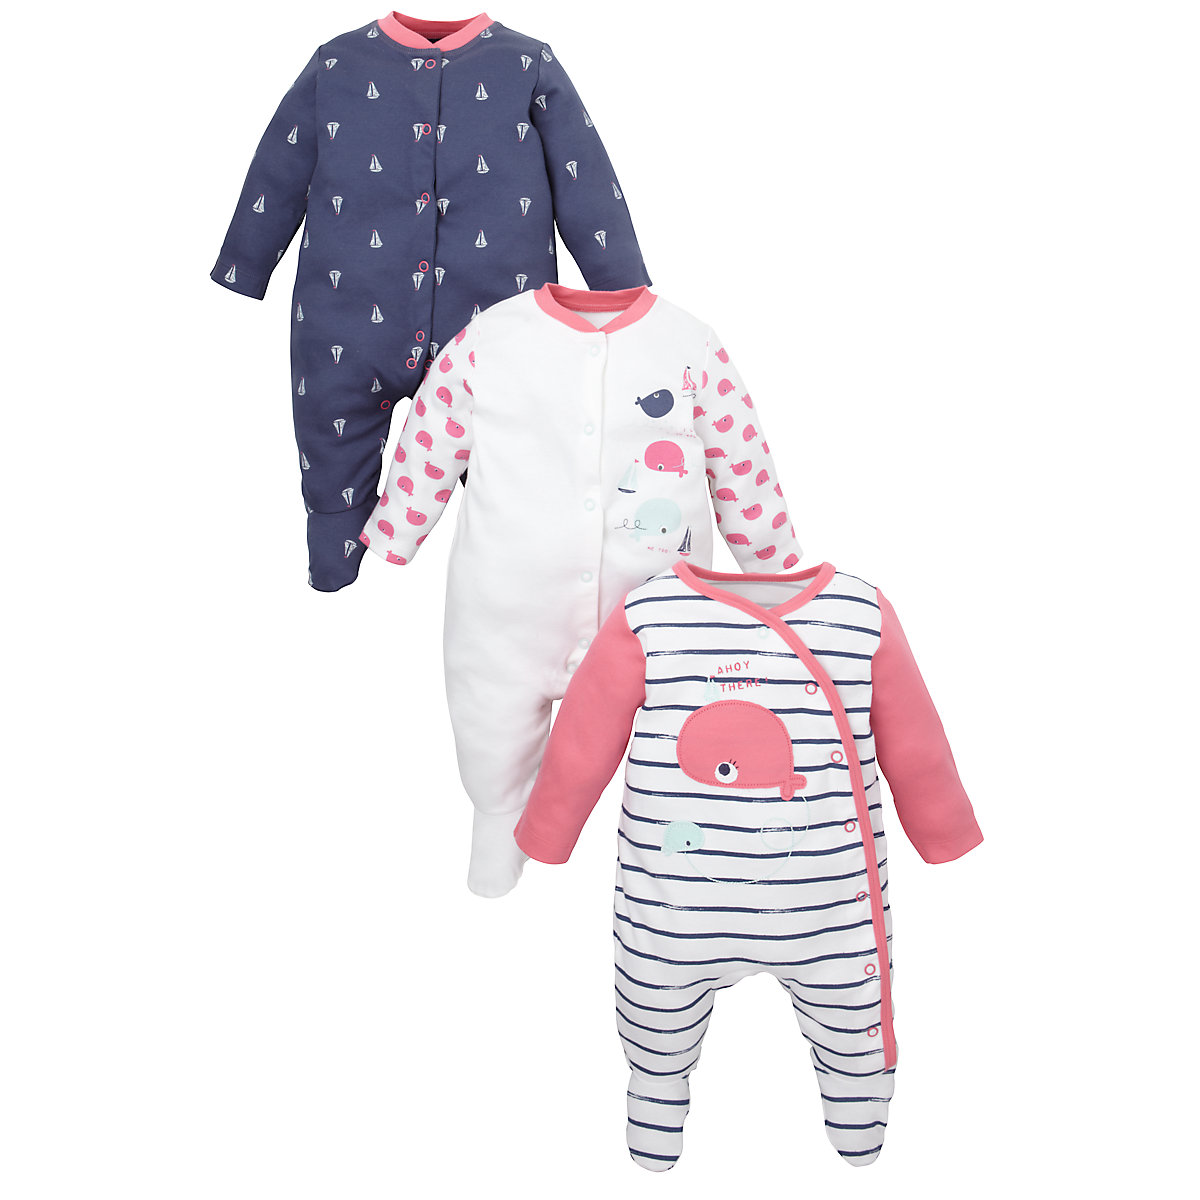 Whale and Boat Sleepsuits- 3 Pack